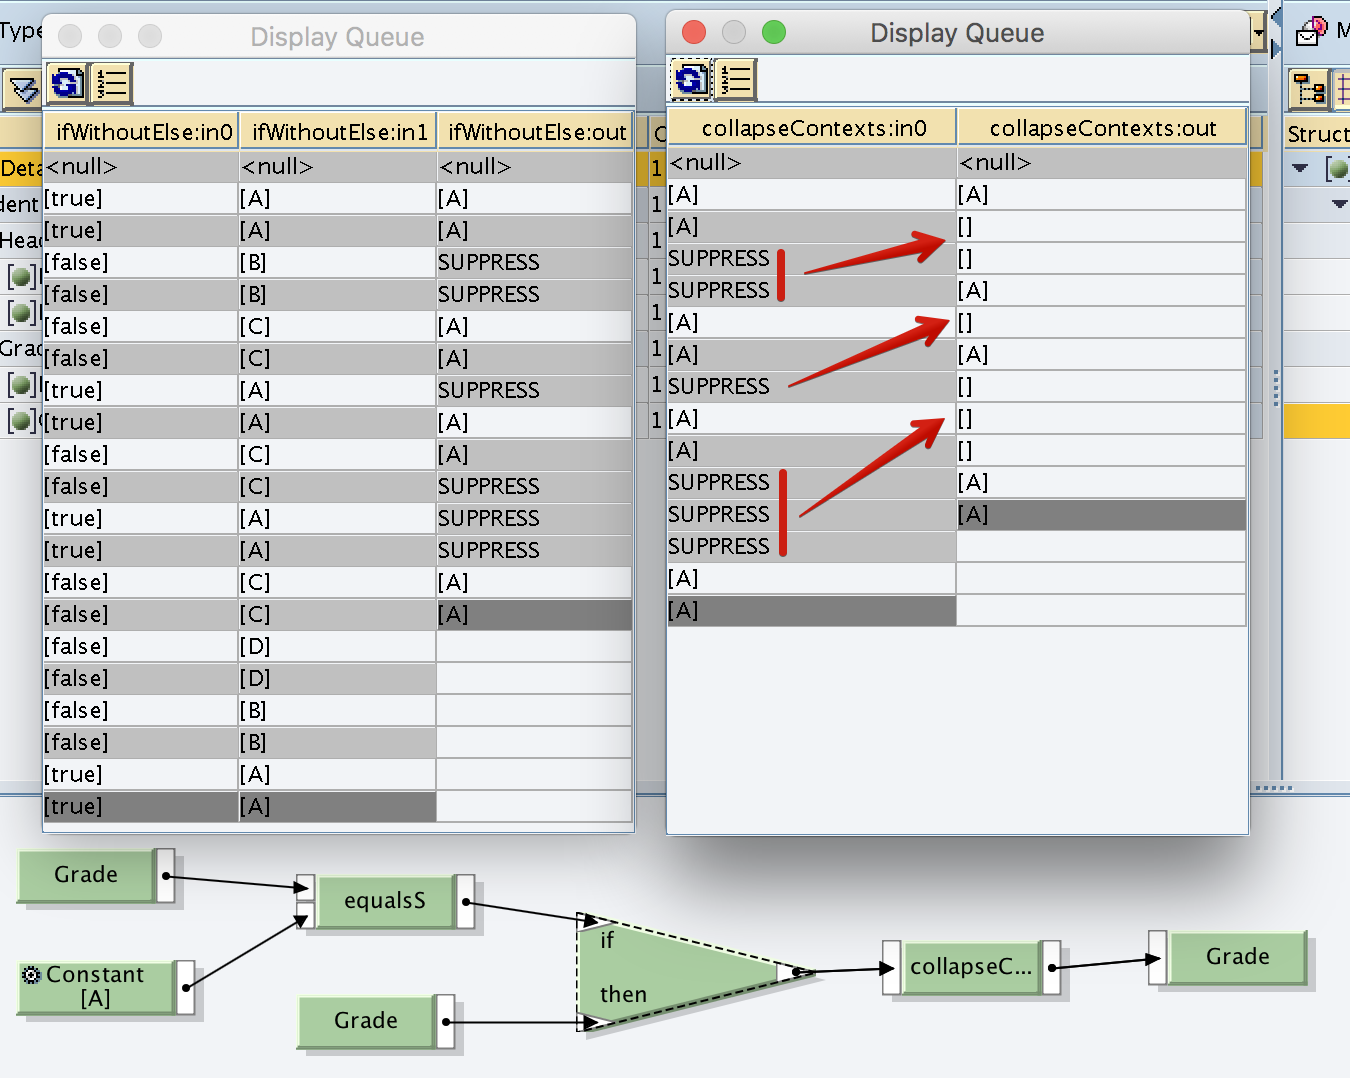 Collapse Context copy SUPPRESS values as null [] values to output.